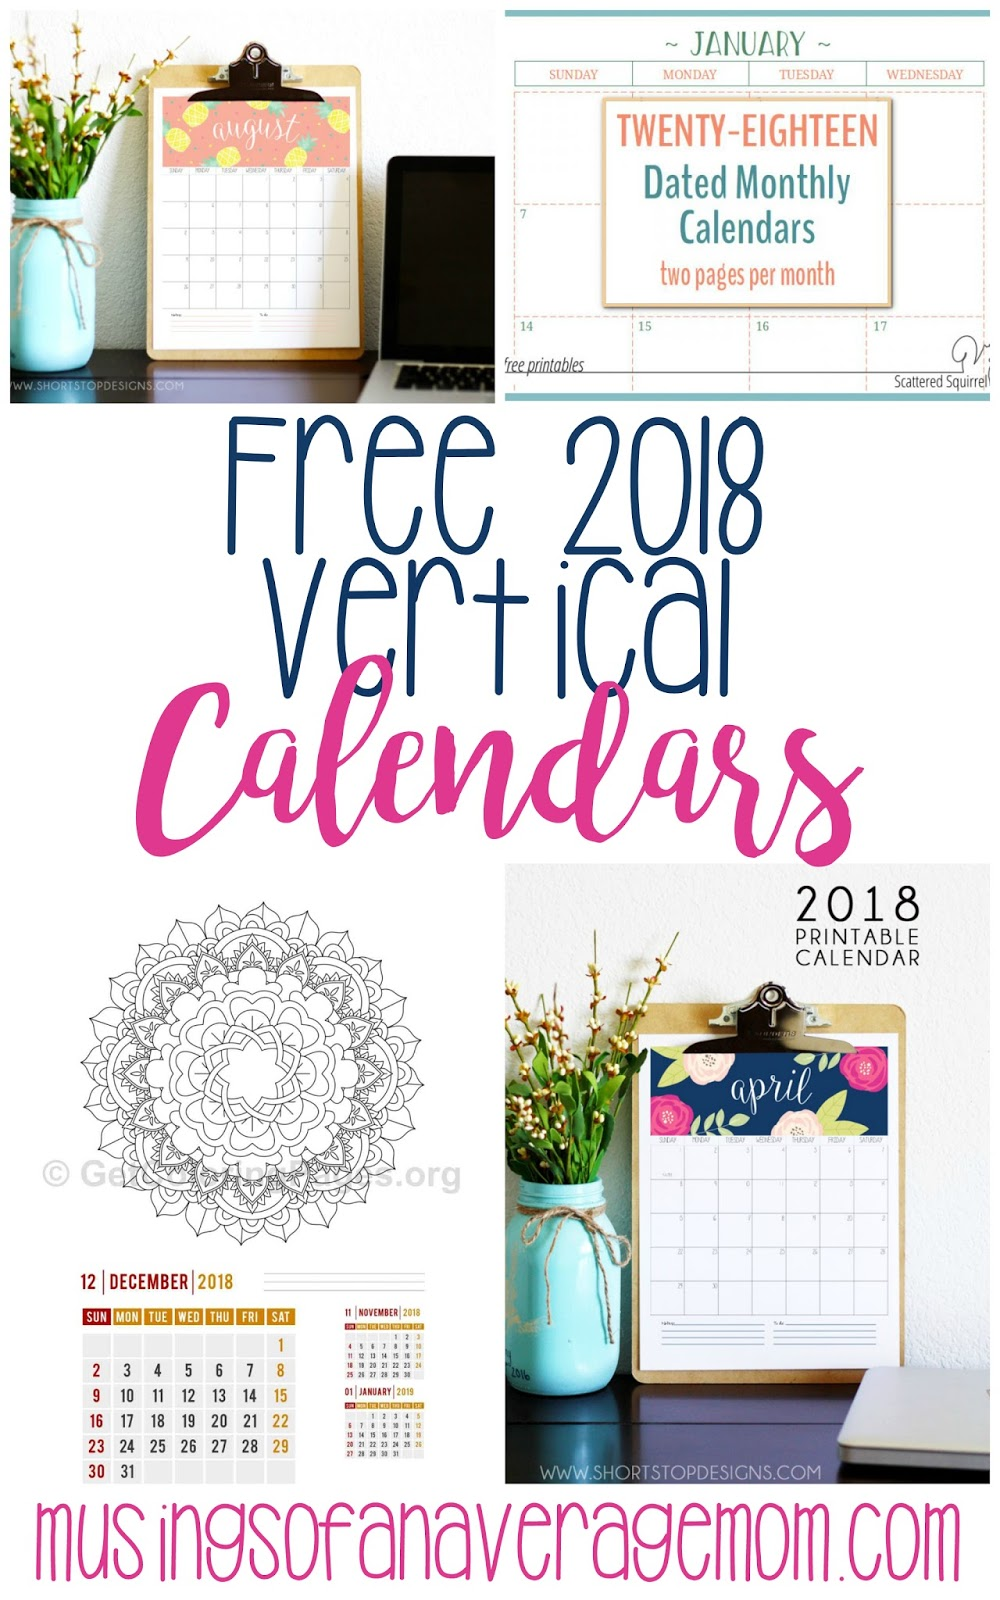 Vertical Calendar Design : Musings of an average mom vertical calendars